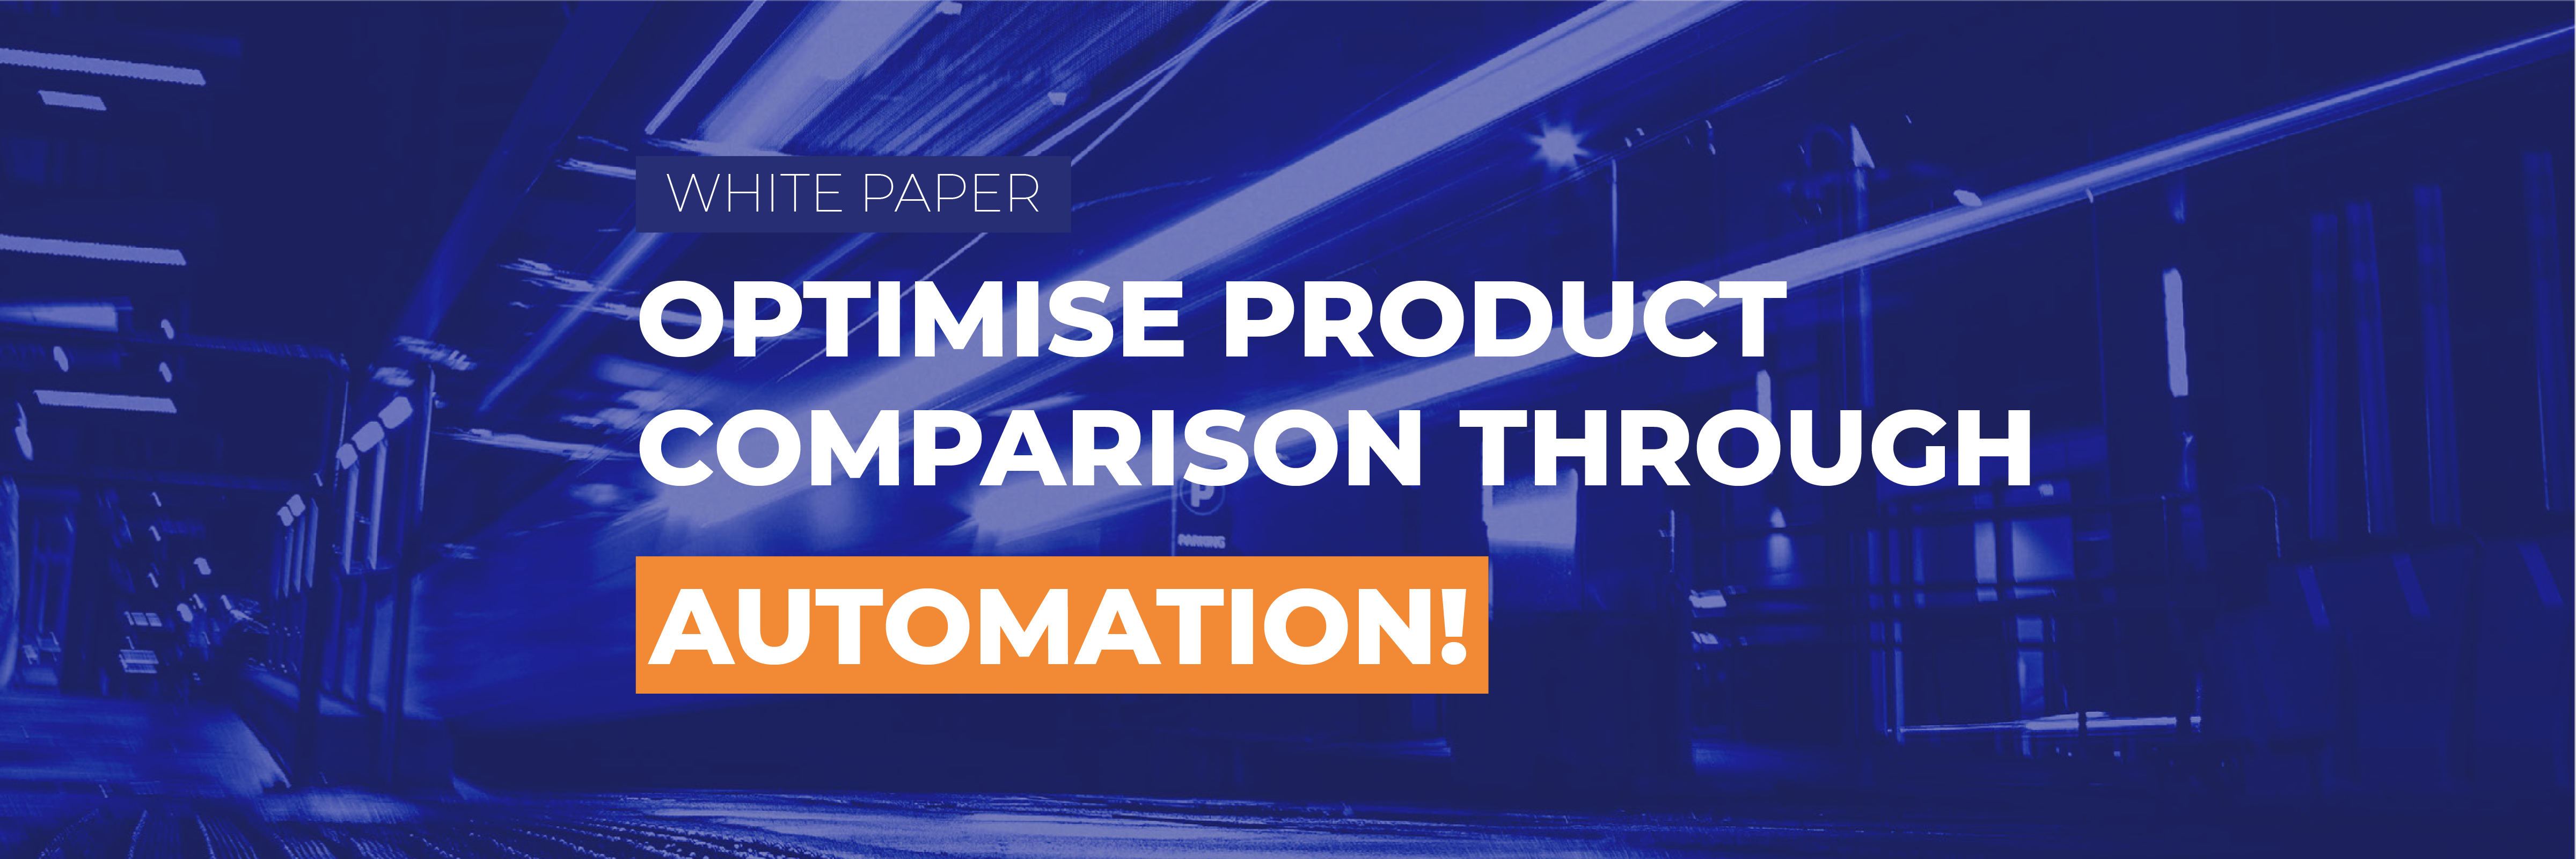 [White Paper] Optimise the comparison of your products through automation!